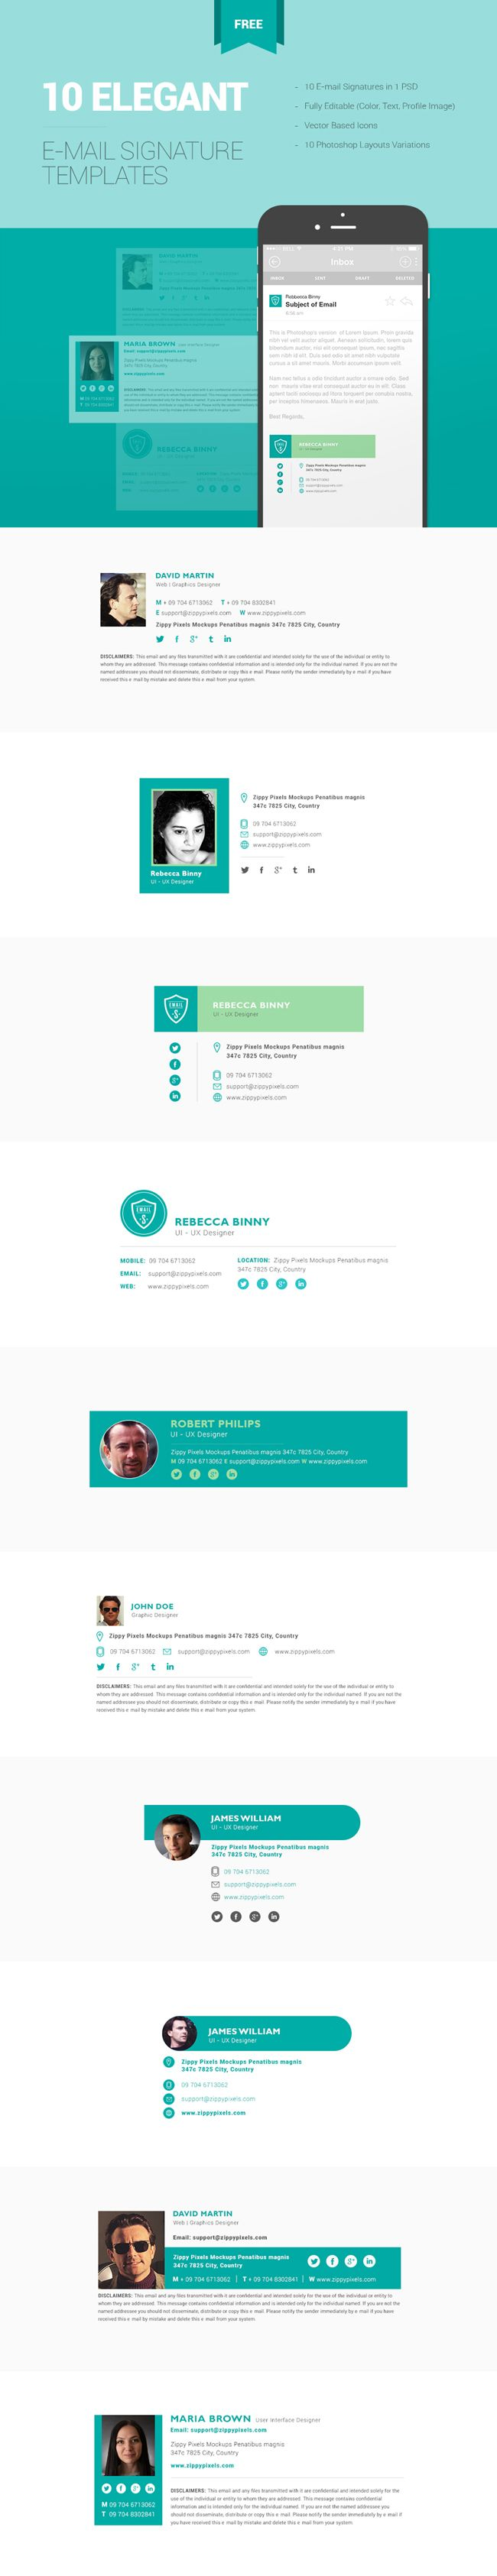 10 Free Email Signature Templates | Email signatures, Email ...